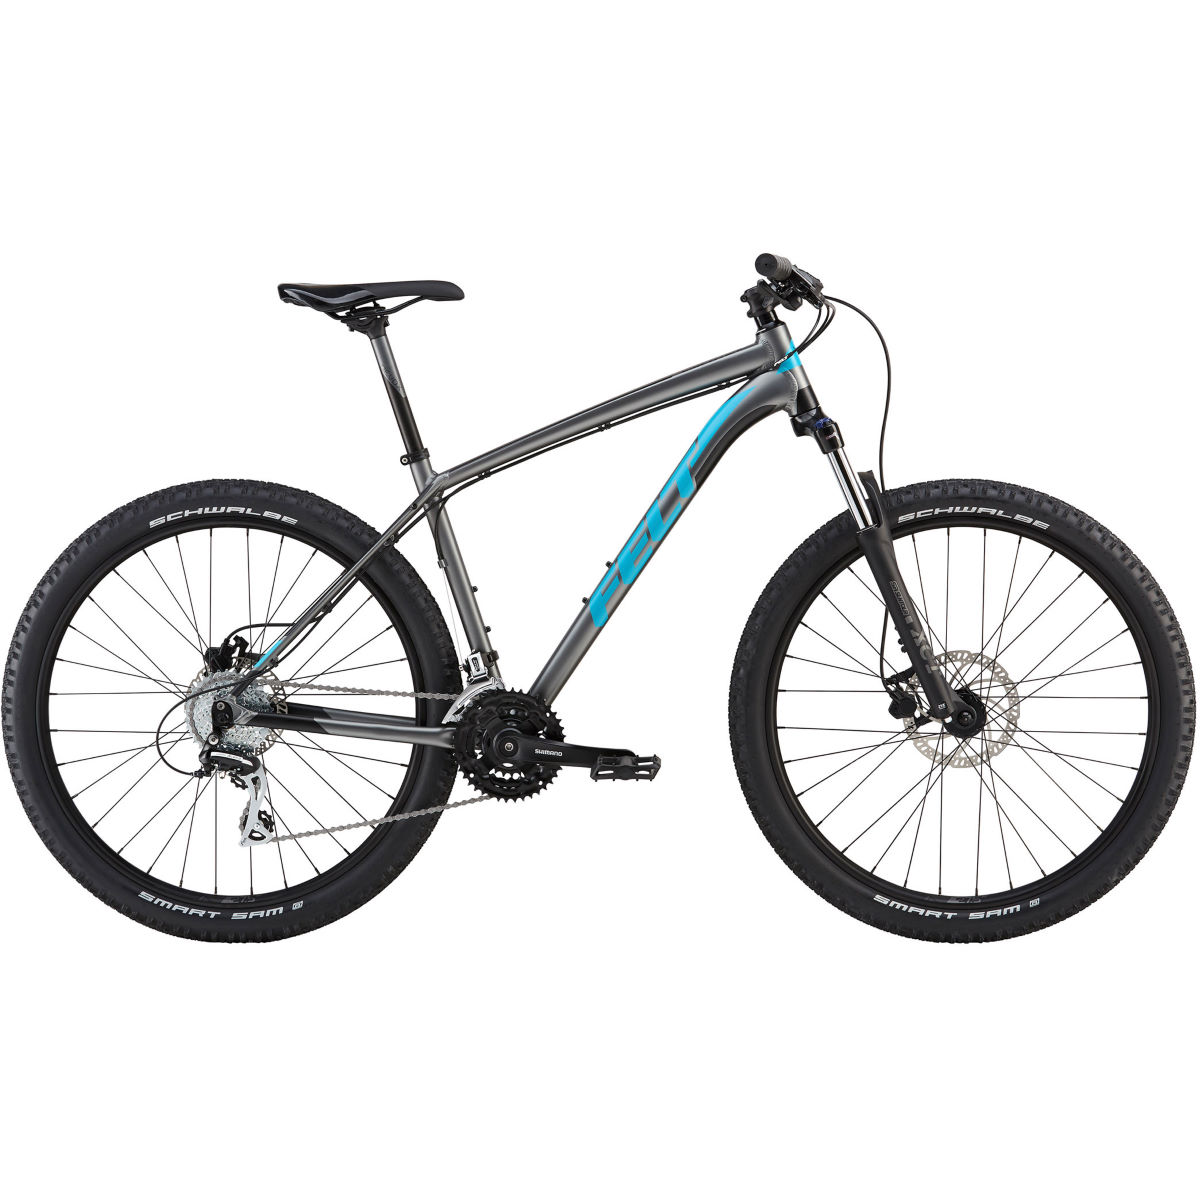 VTT semi-rigide Felt Dispatch 7/80 XC (2018) - 22'' Stock Bike